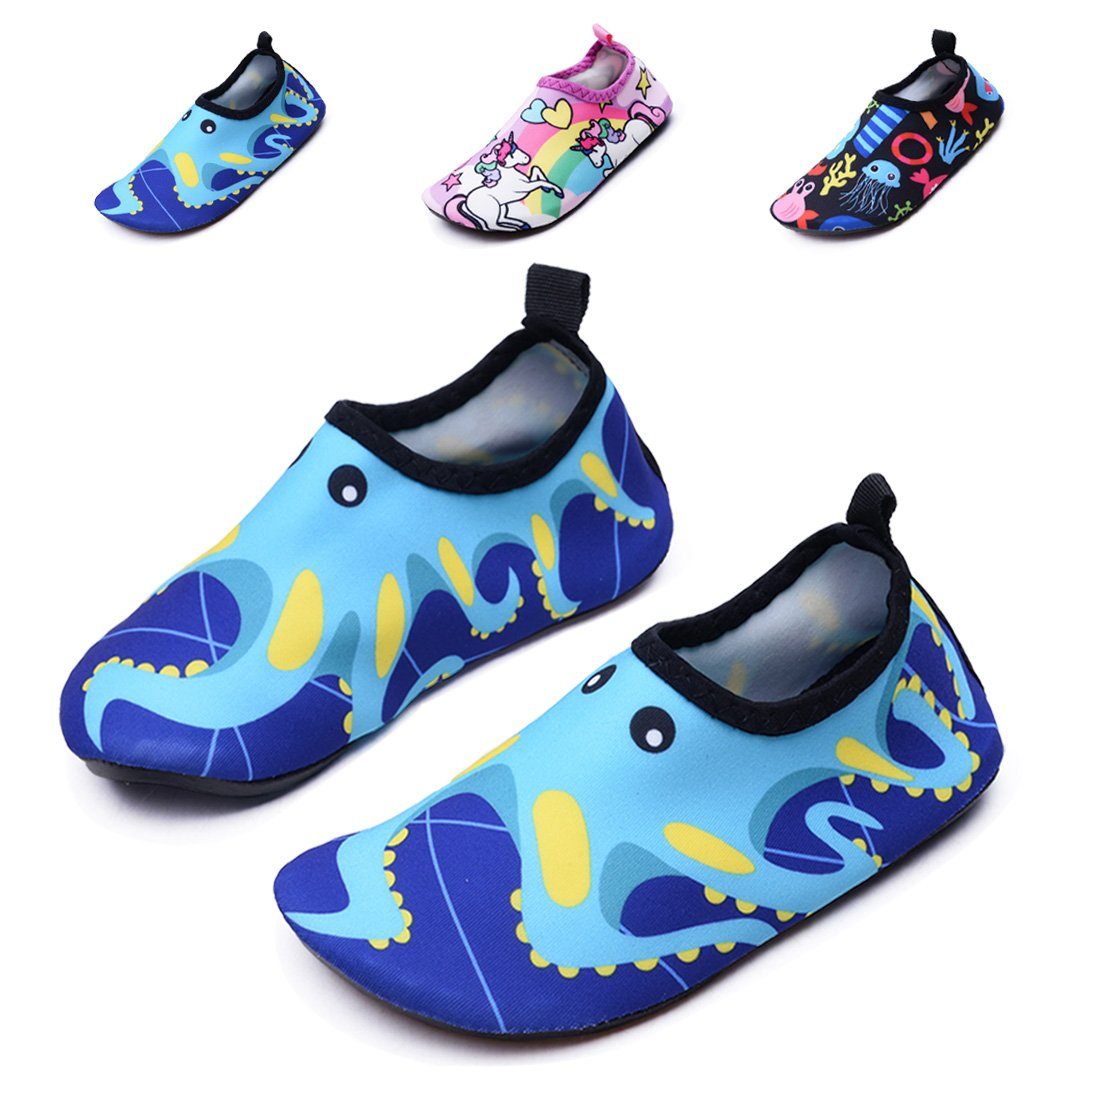 Lewhosy Kids Boys and Girls Swim Water Shoes Quick Drying Barefoot Aqua Socks Shoes for Beach Pool Surfing Yoga(26/Octopus Blue)